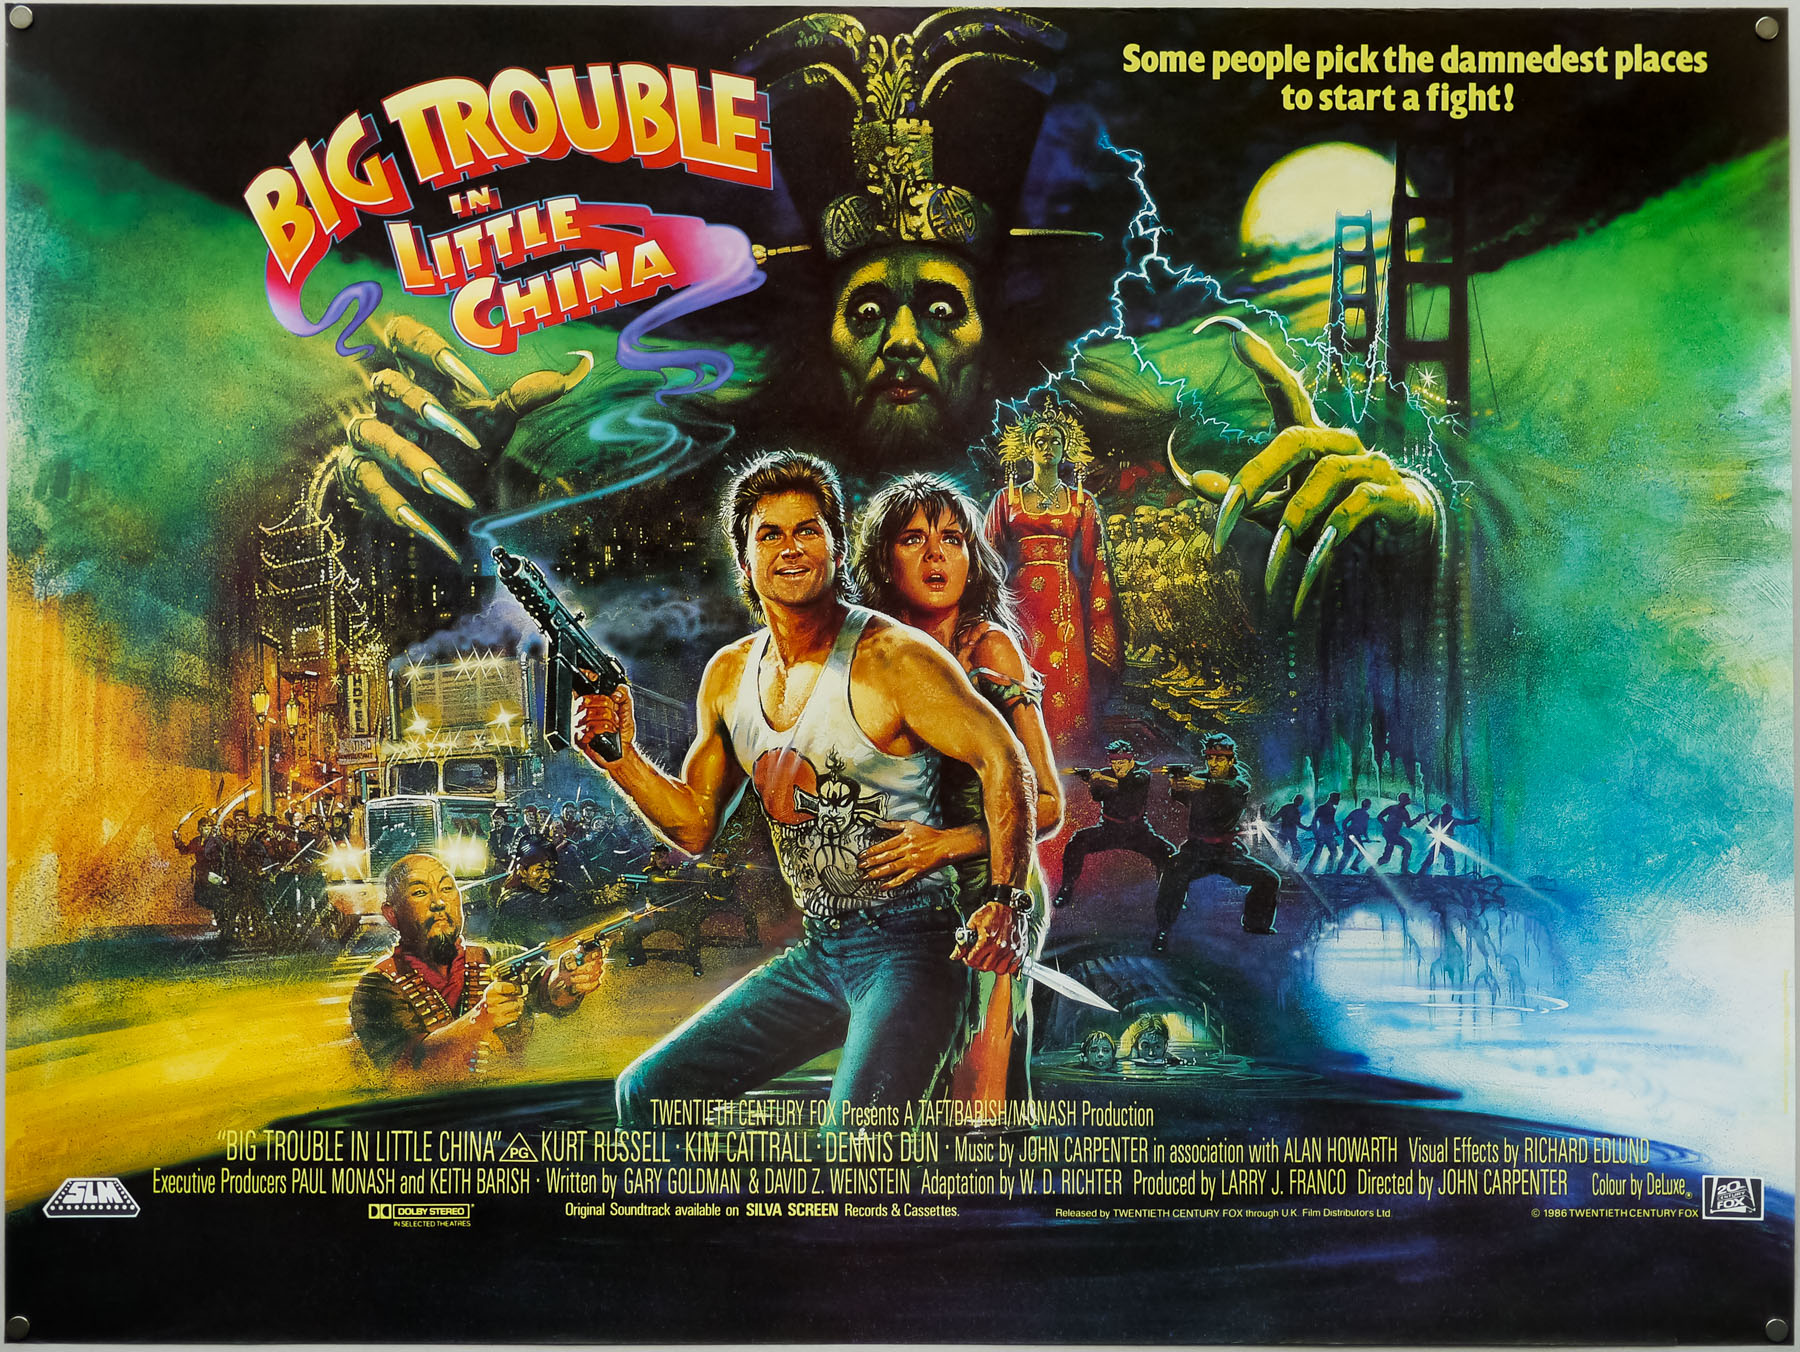 The British quad for John Carpenter's Big Trouble in Little China, painted by Brian Bysouth in 1986